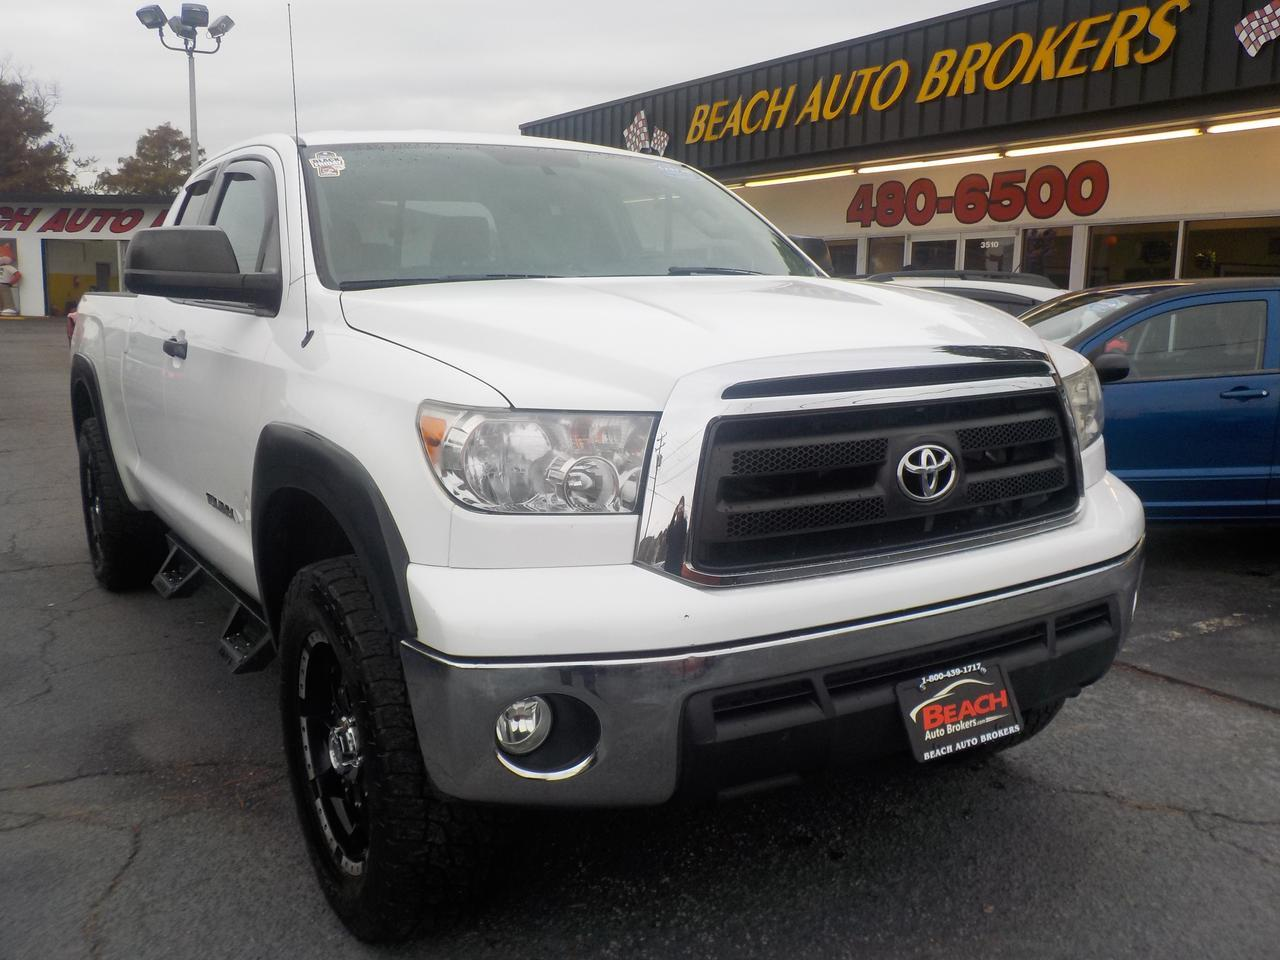 hight resolution of 2010 toyota tundra sr5 double cab 4x4 warranty heated mirrors tow pkg bed liner sat radio running boards aux norfolk va 27250002